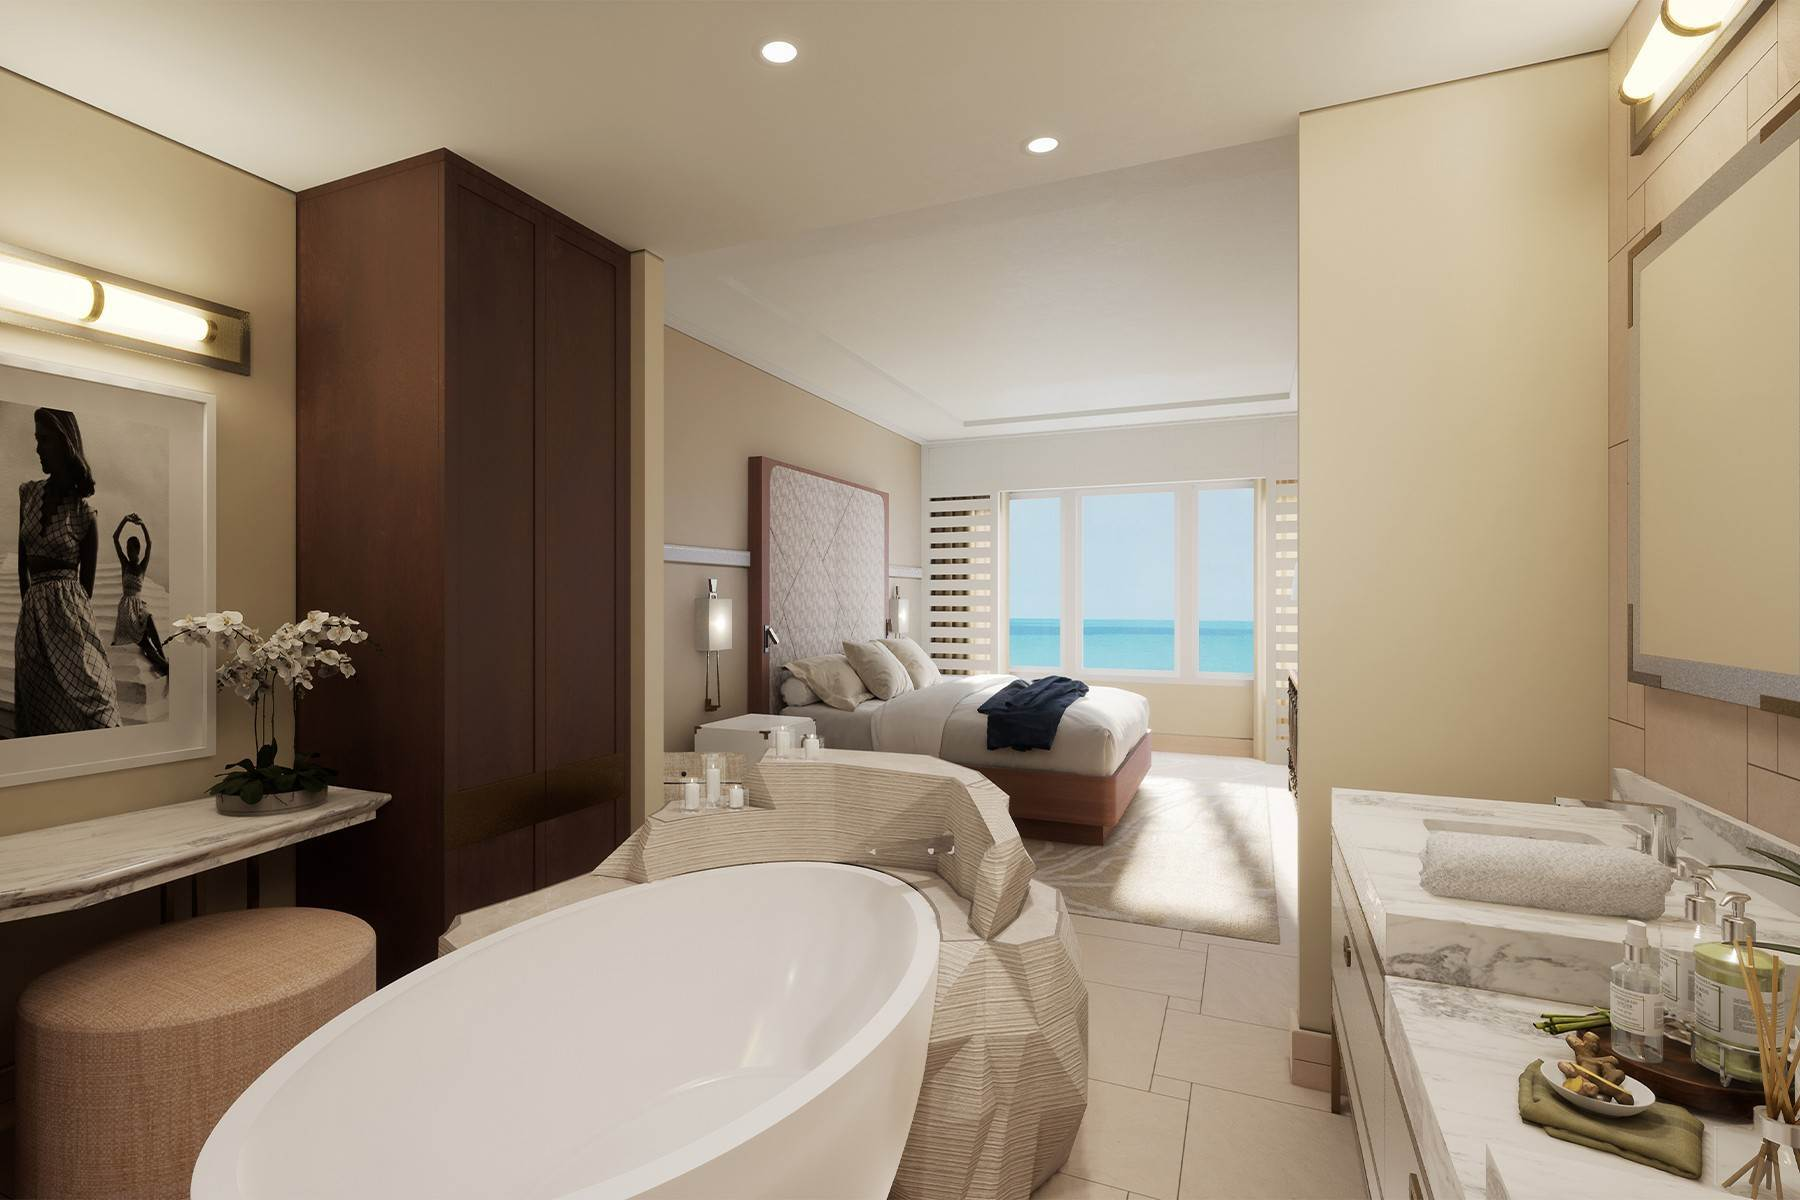 1. Condo / Townhouse / Flat for Sale at St. Regis Bermuda Residences - Gates Bay 4B St. Catherine's Beach St Georges Parish, GE03 Bermuda